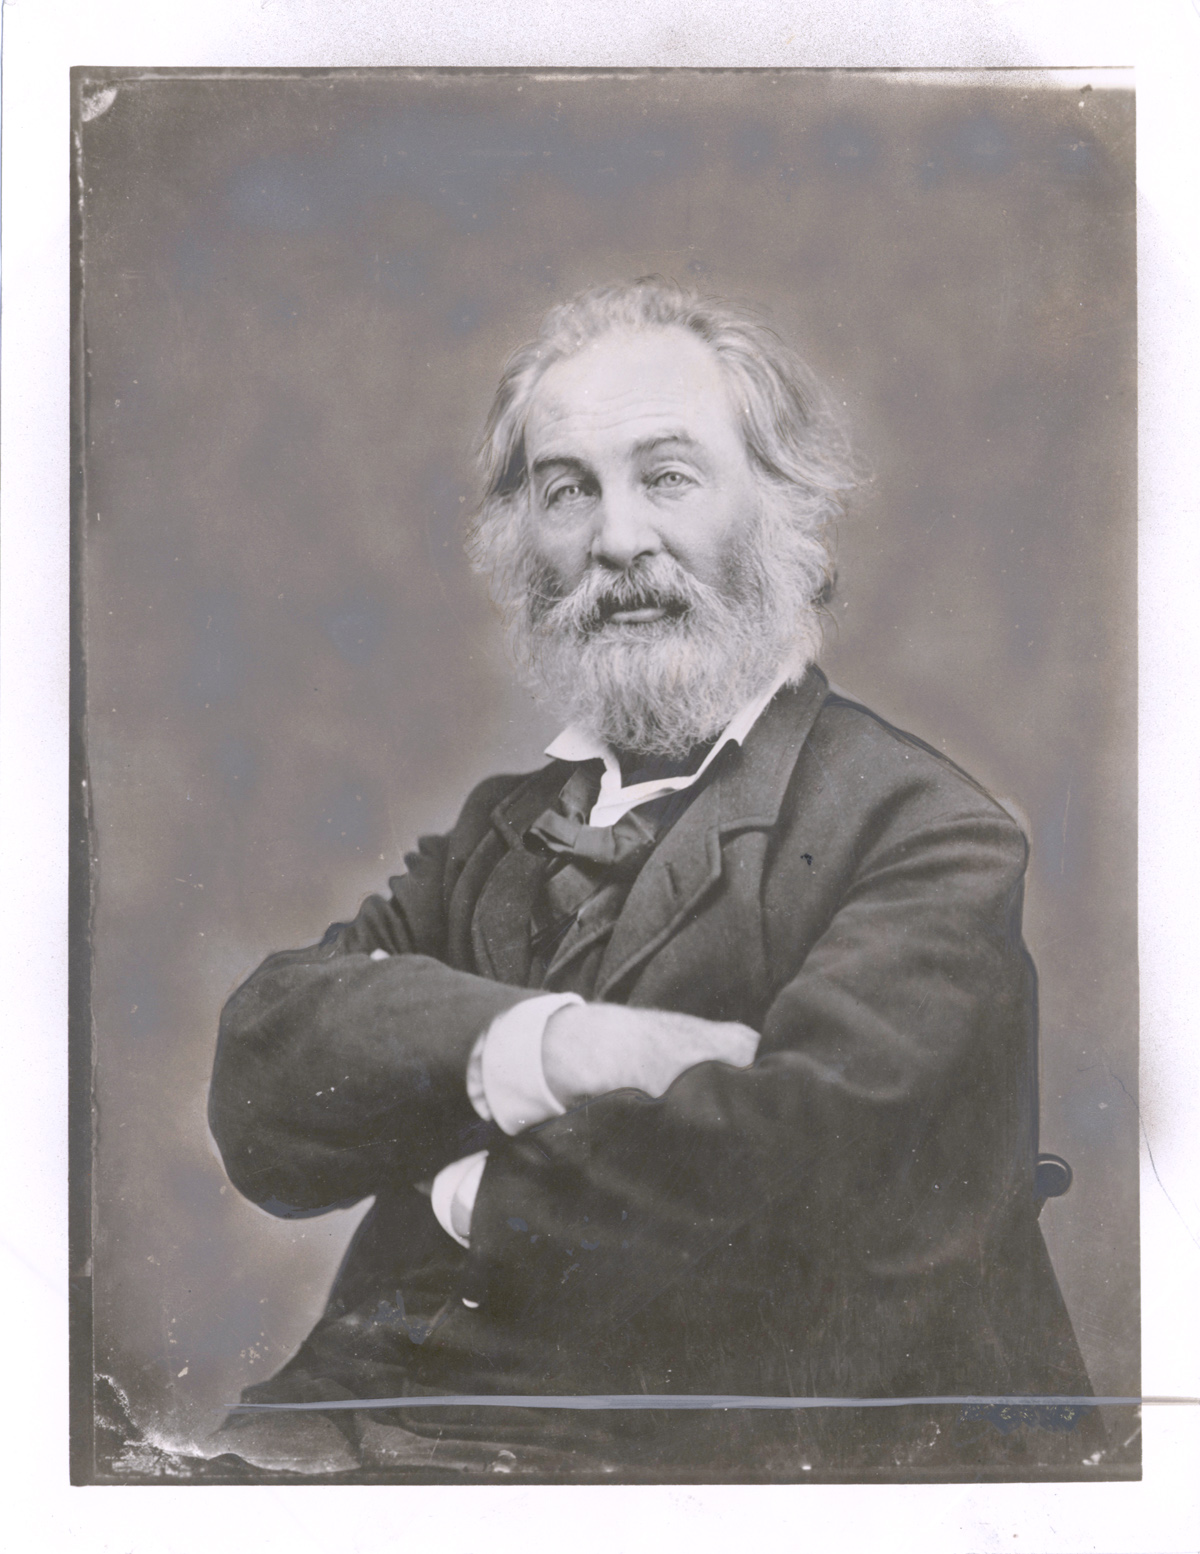 Walt Whitman, ca. 1865, in an image captured by famed Civil War photographer Matthew Brady   NYPL Photography Collection, Astor, Lenox and Tilden Foundations